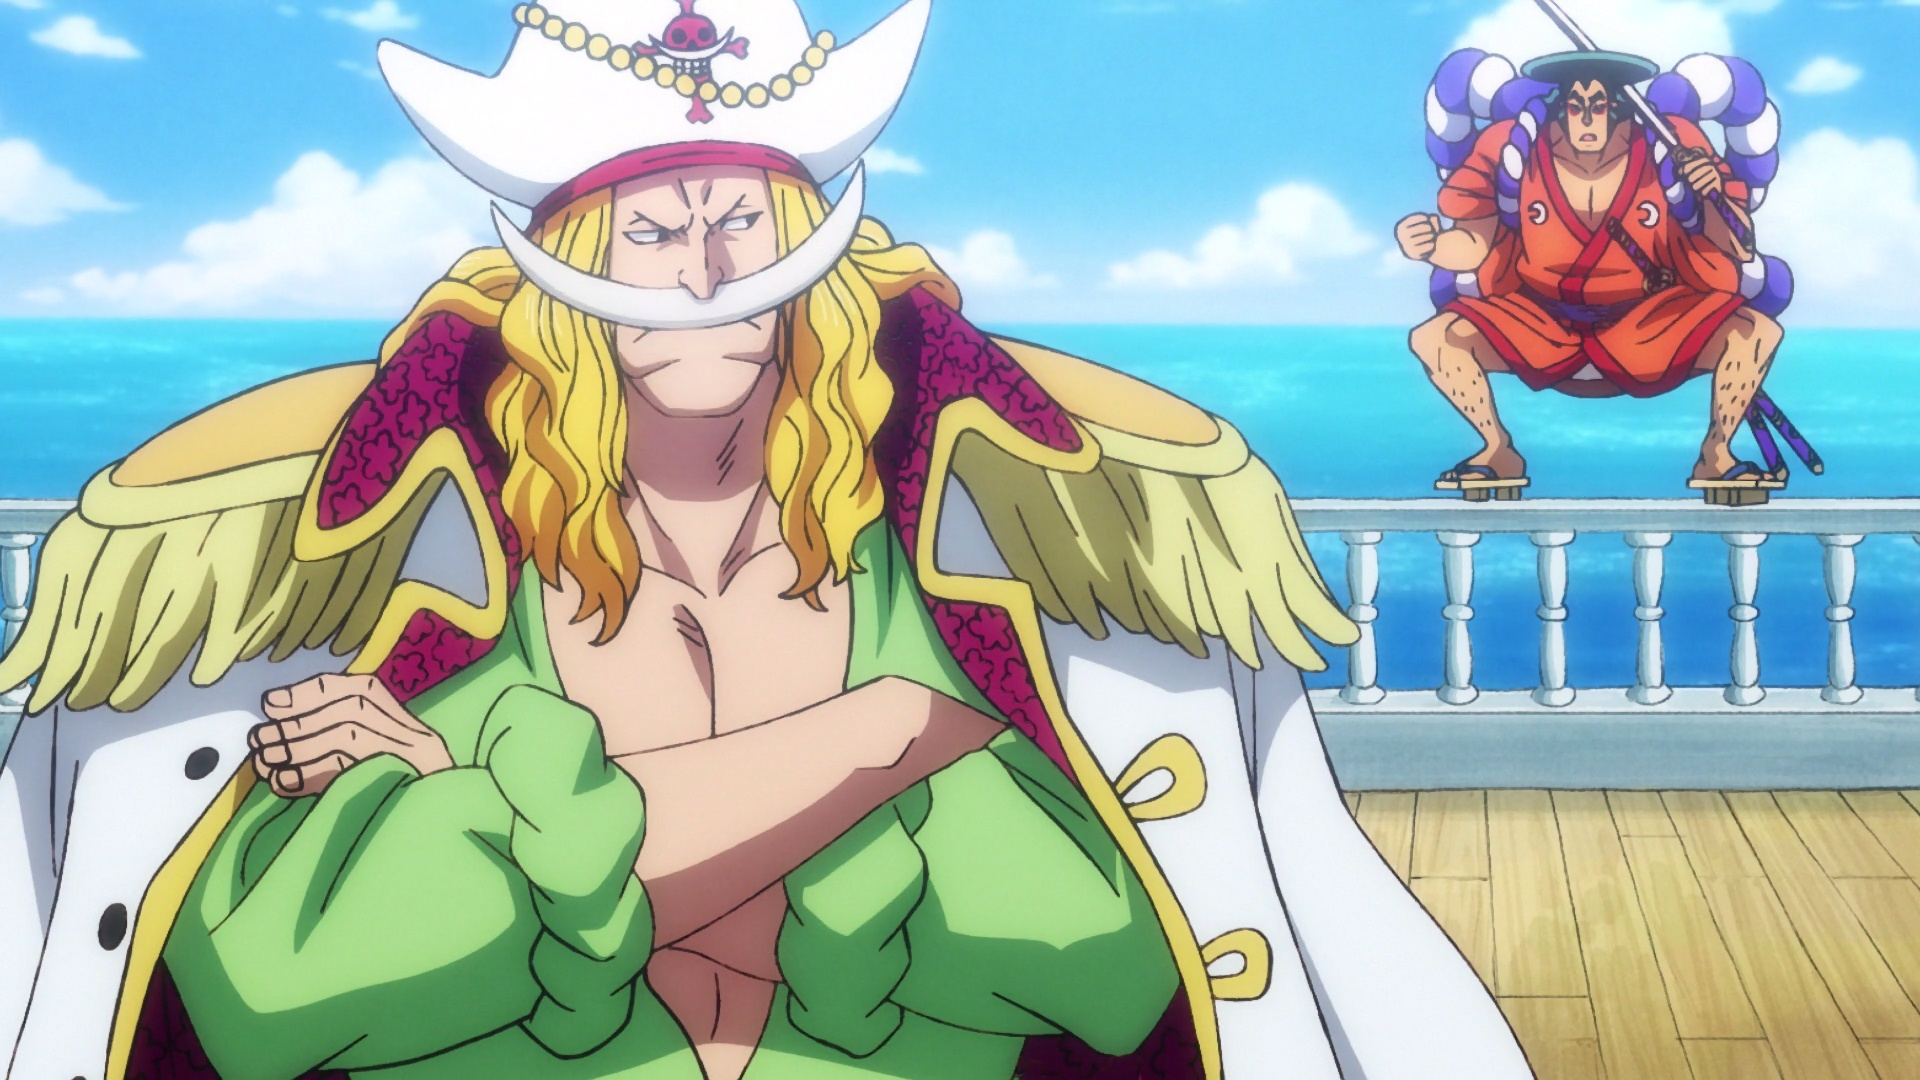 ONE PIECE 964 VOSTFR SD/HD/HD 10BITS/FHD V2 News background